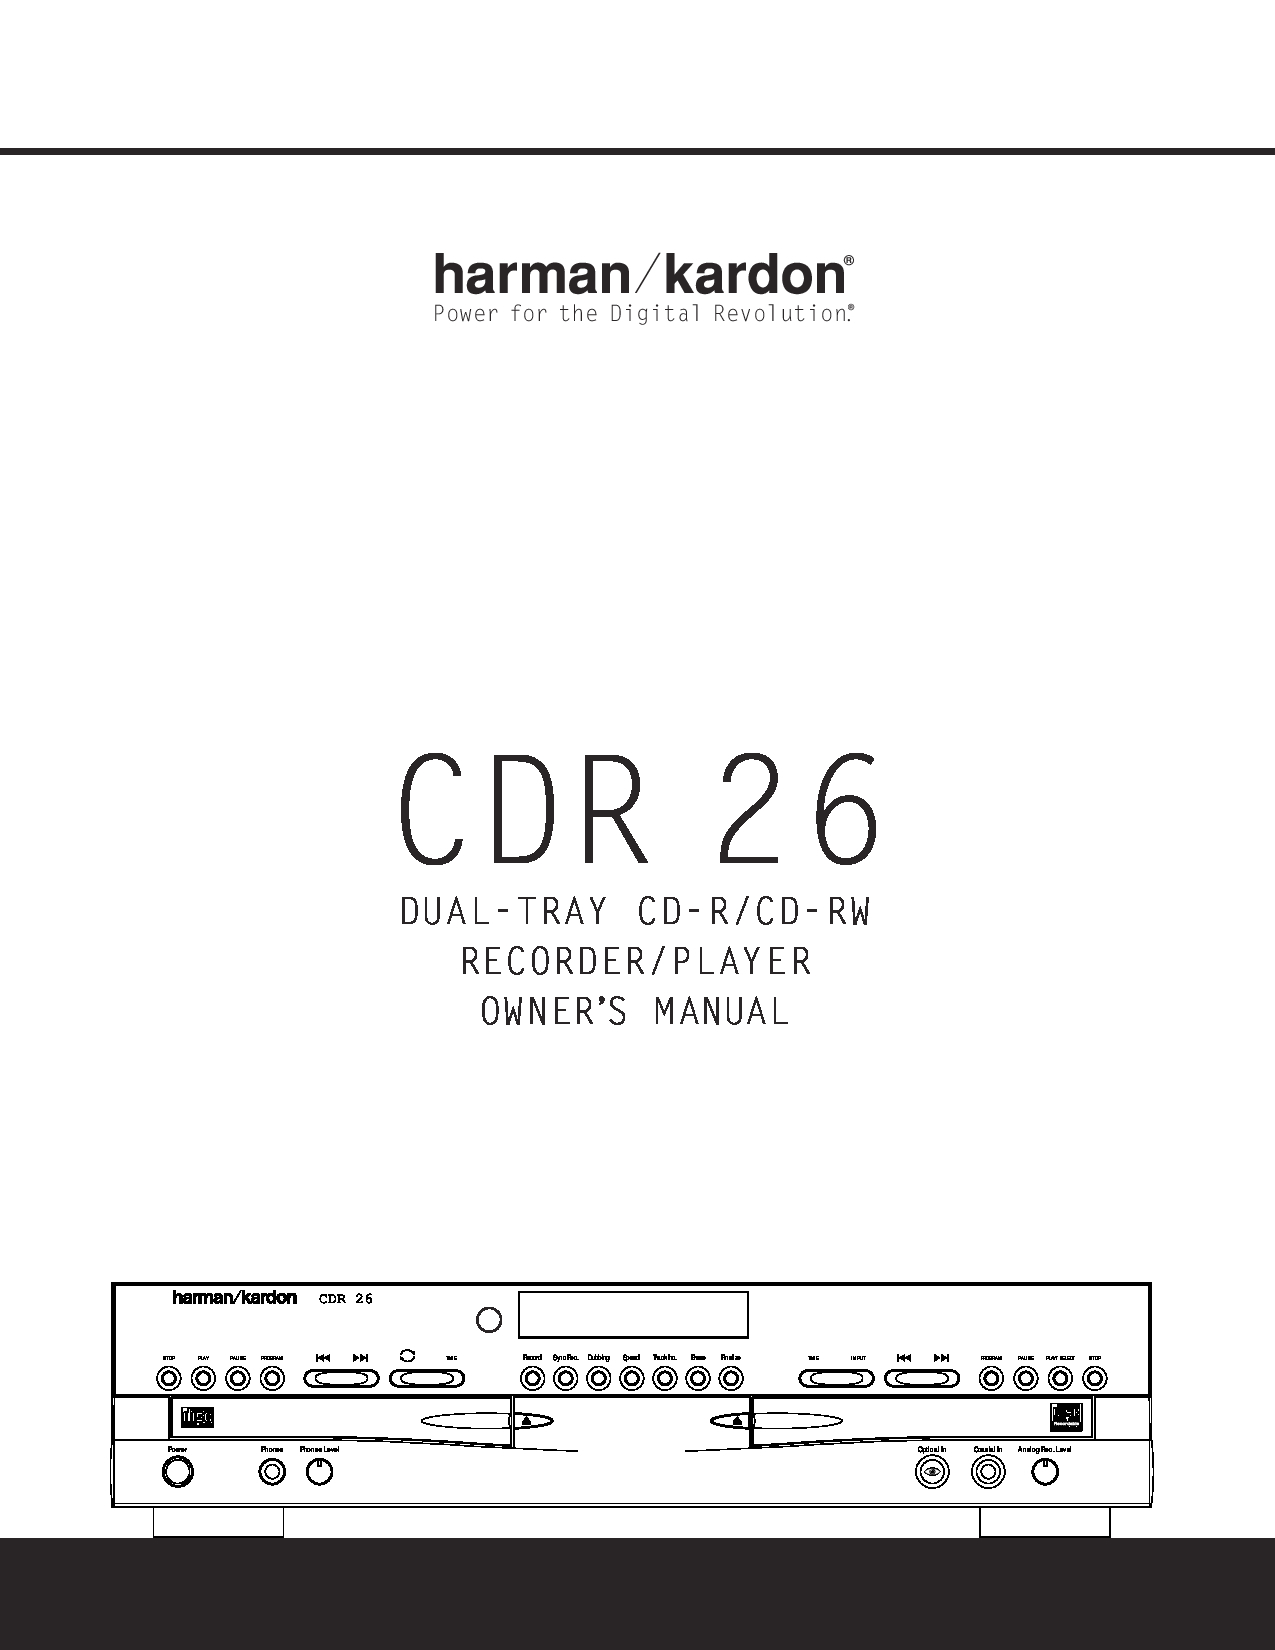 Harman kardon cdr 20 manual